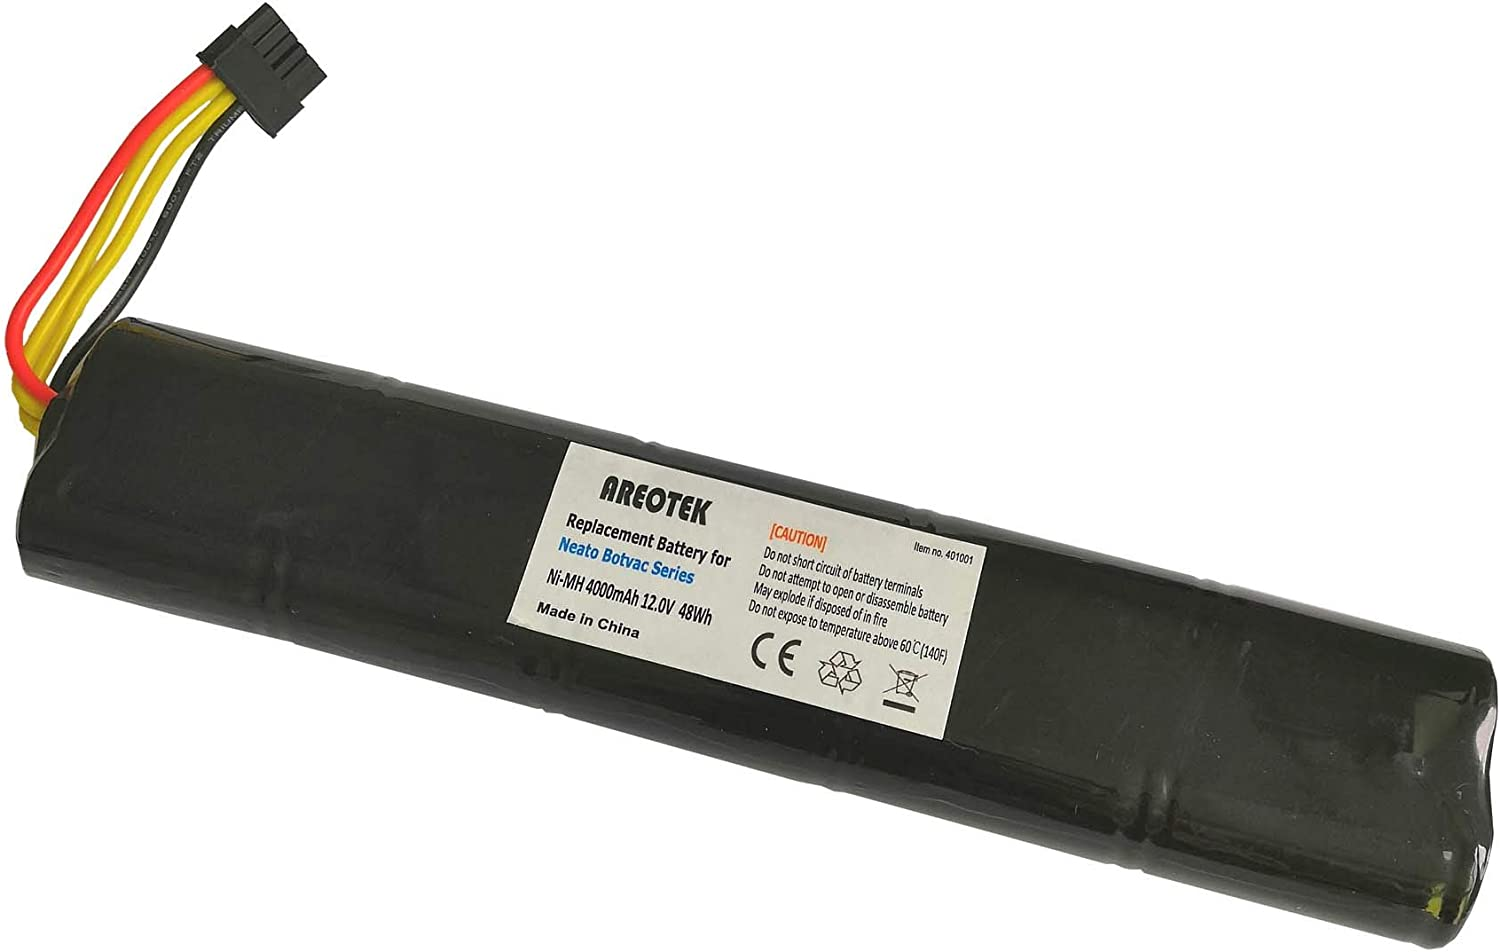 Areotek 12V 4000mAh Replacement Battery for Neato Botvac D80 80 D85 D75 70e 85 75 Robot Vacuum Cleaner Compatible with Part 945-0129 945-0174